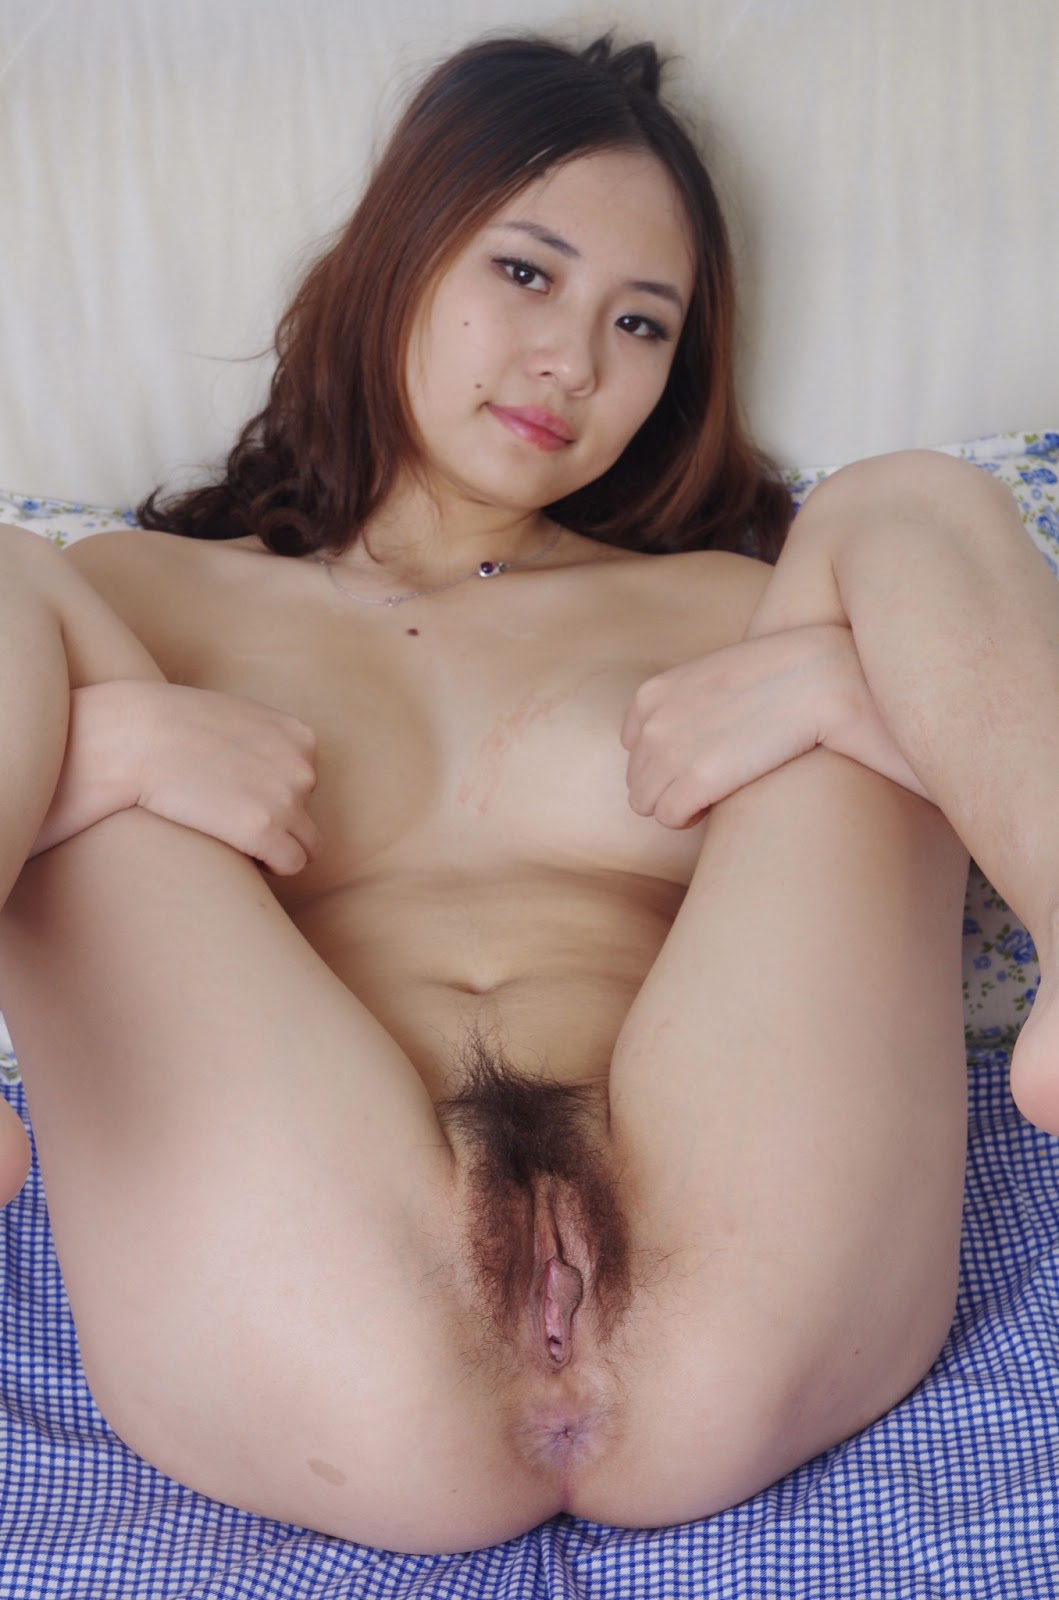 Teen China Nude Pornmovie